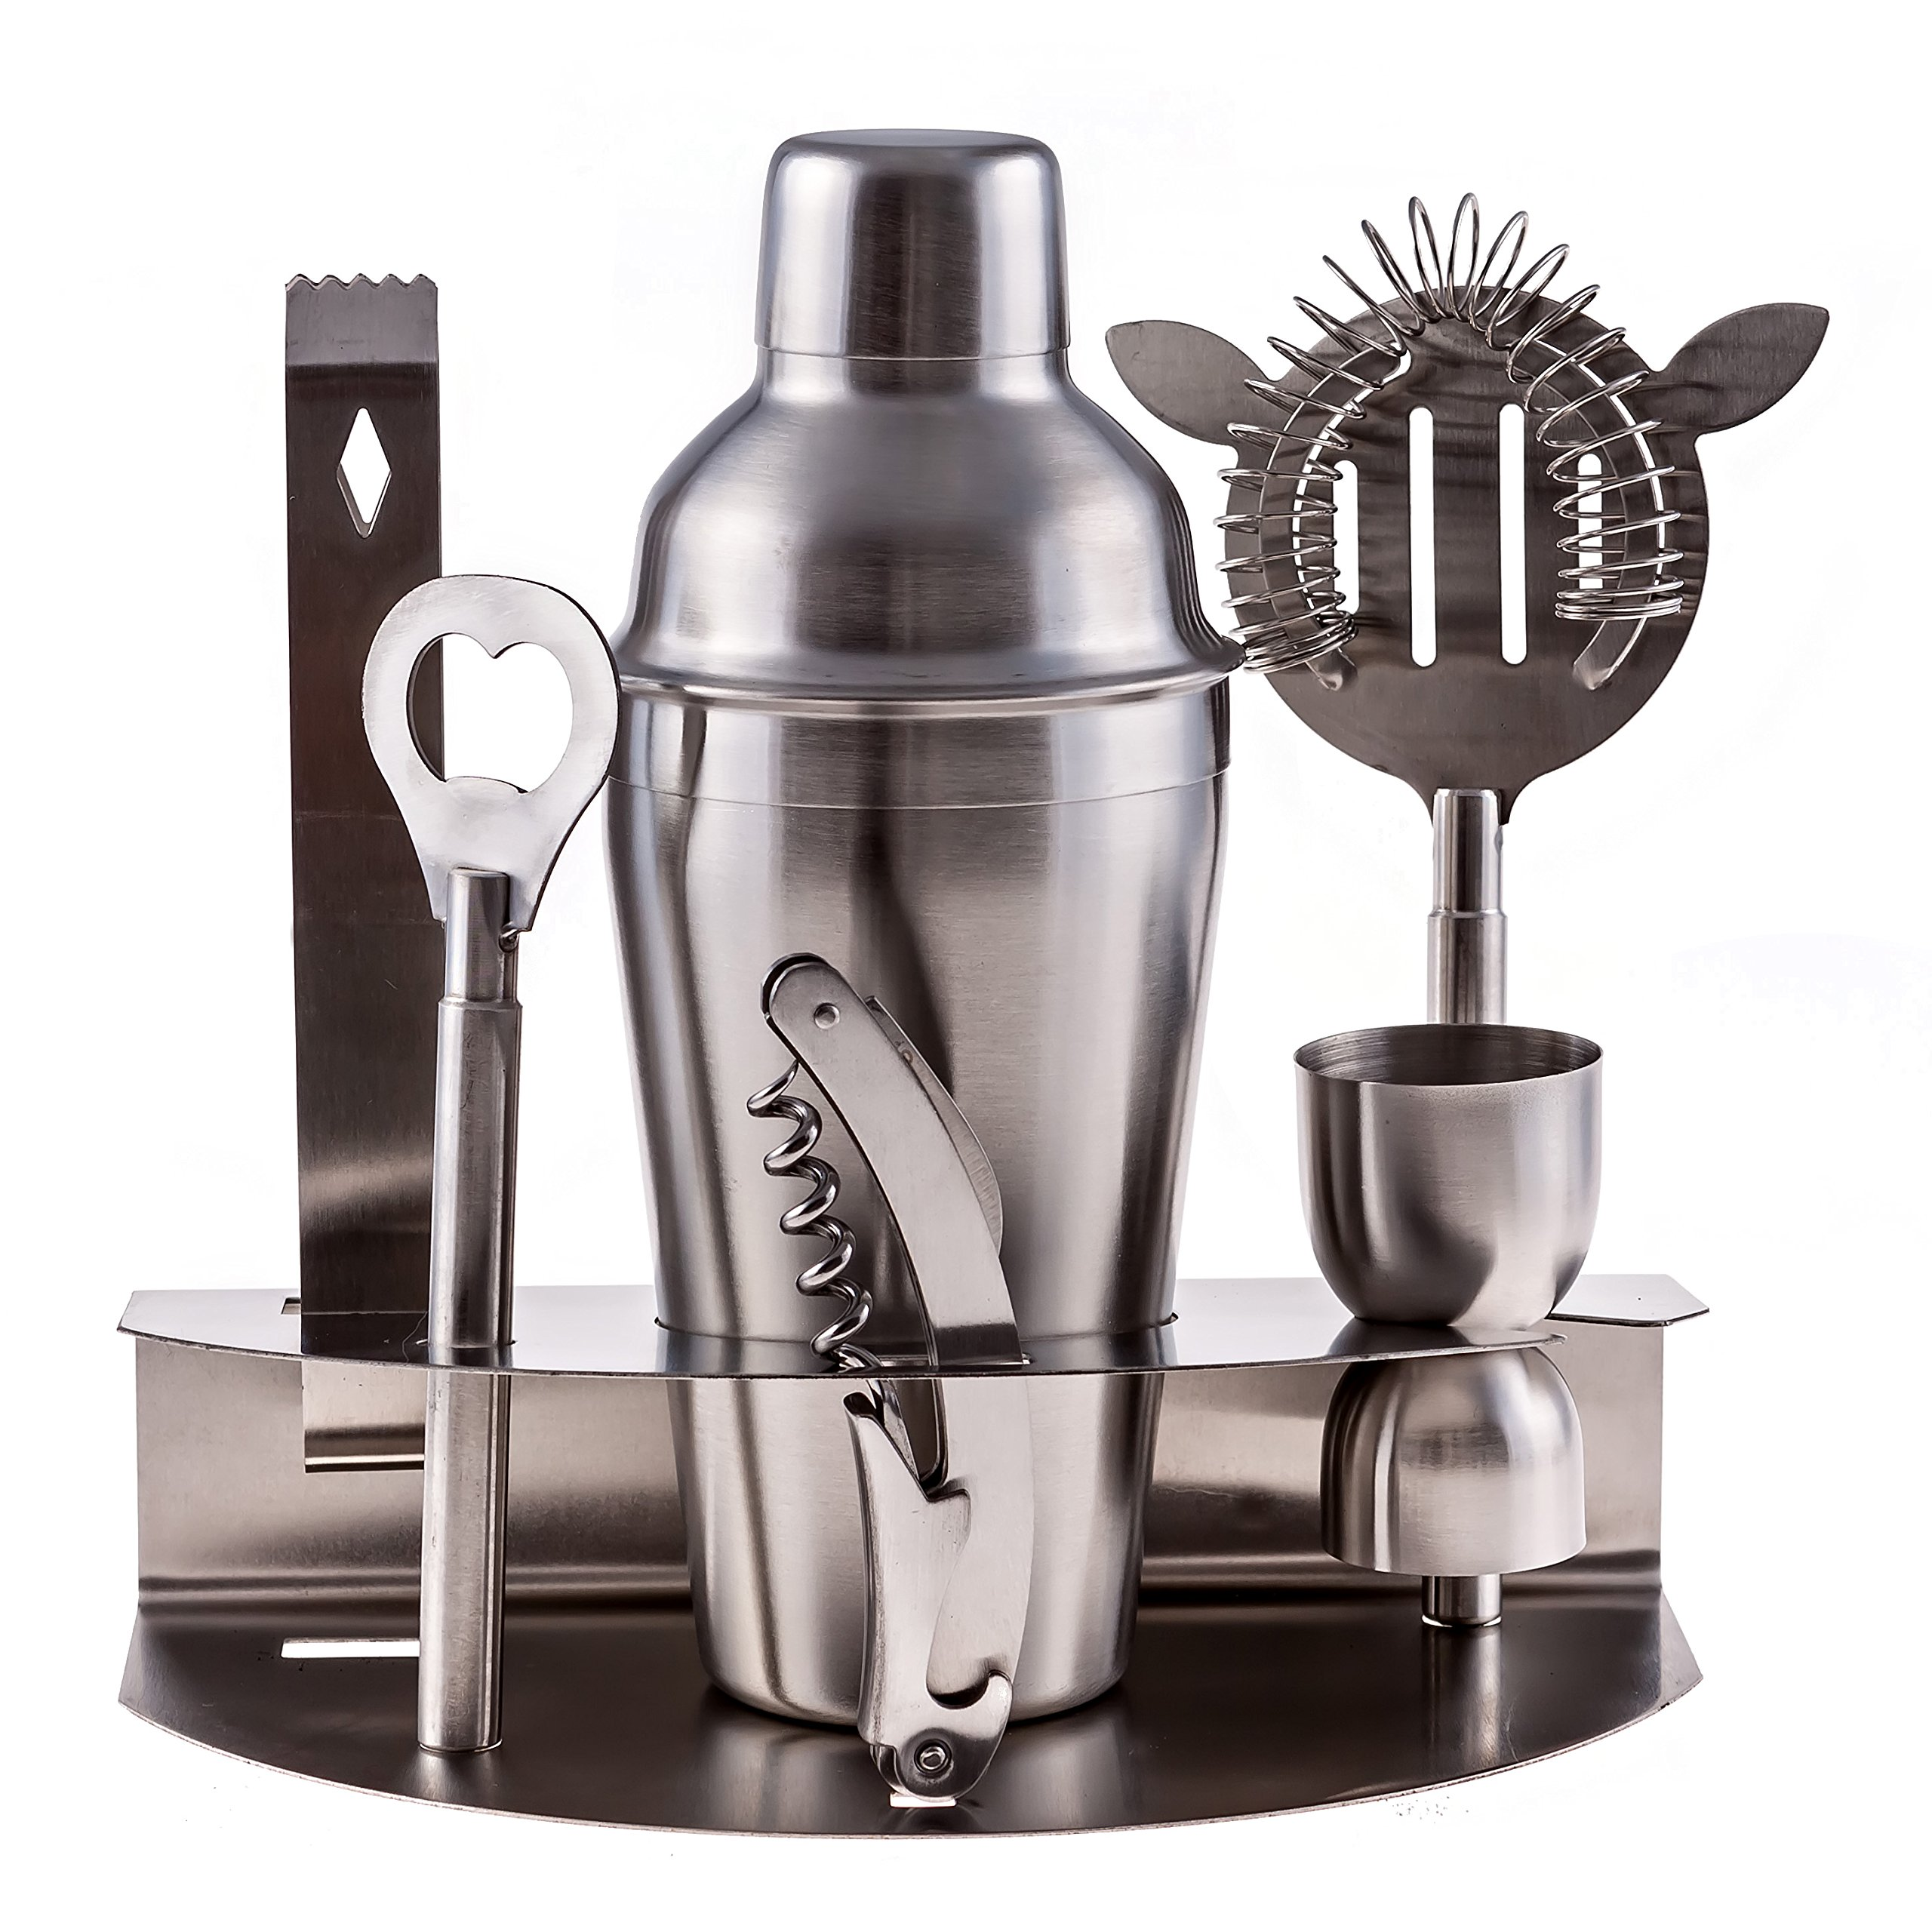 Cocktail Shaker- Mixed Drinks Set Martini Mixer with Bottle Opener Jigger Shot Glass Strainer by Cuisine Prefere